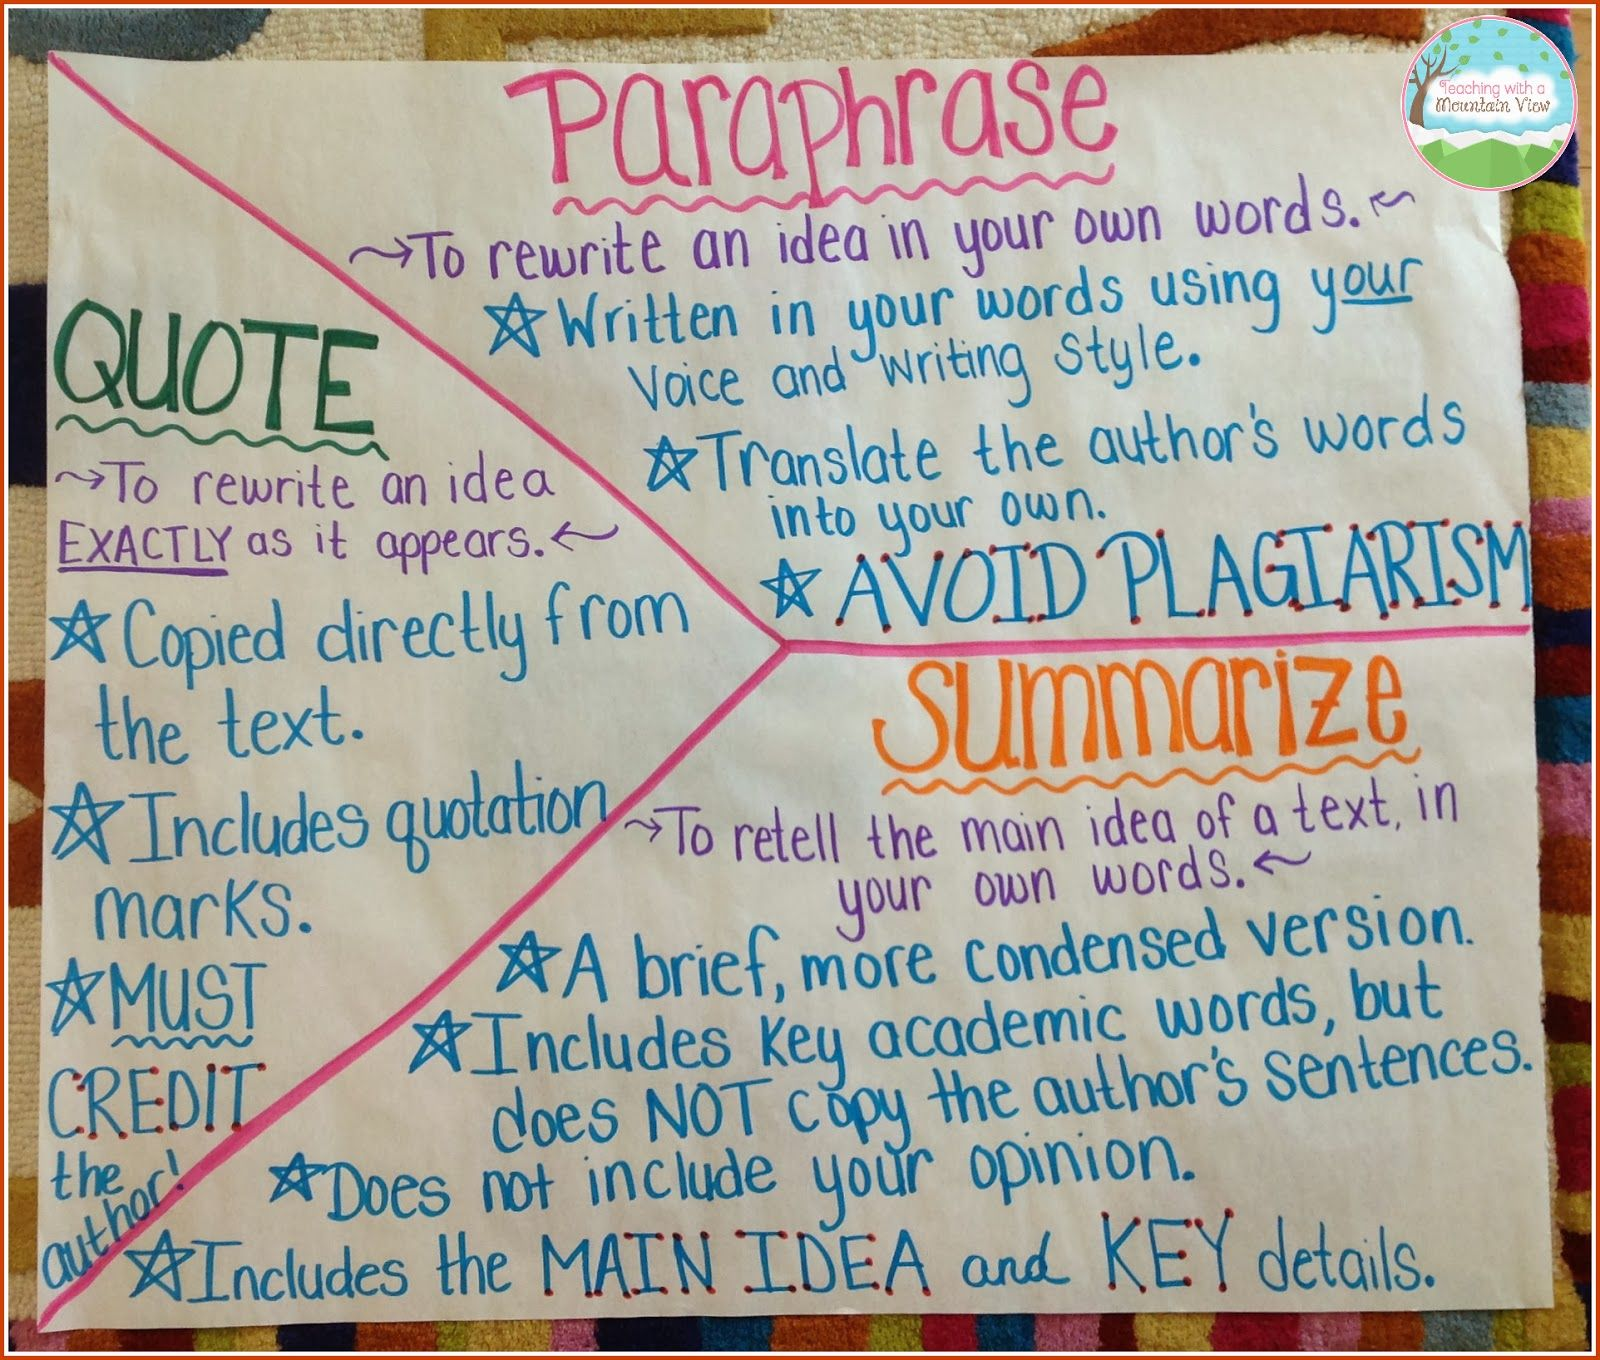 worksheet Paraphrase Practice Worksheet 17 images about summarizing and paraphrasing on pinterest anchor charts texts graphic organizers